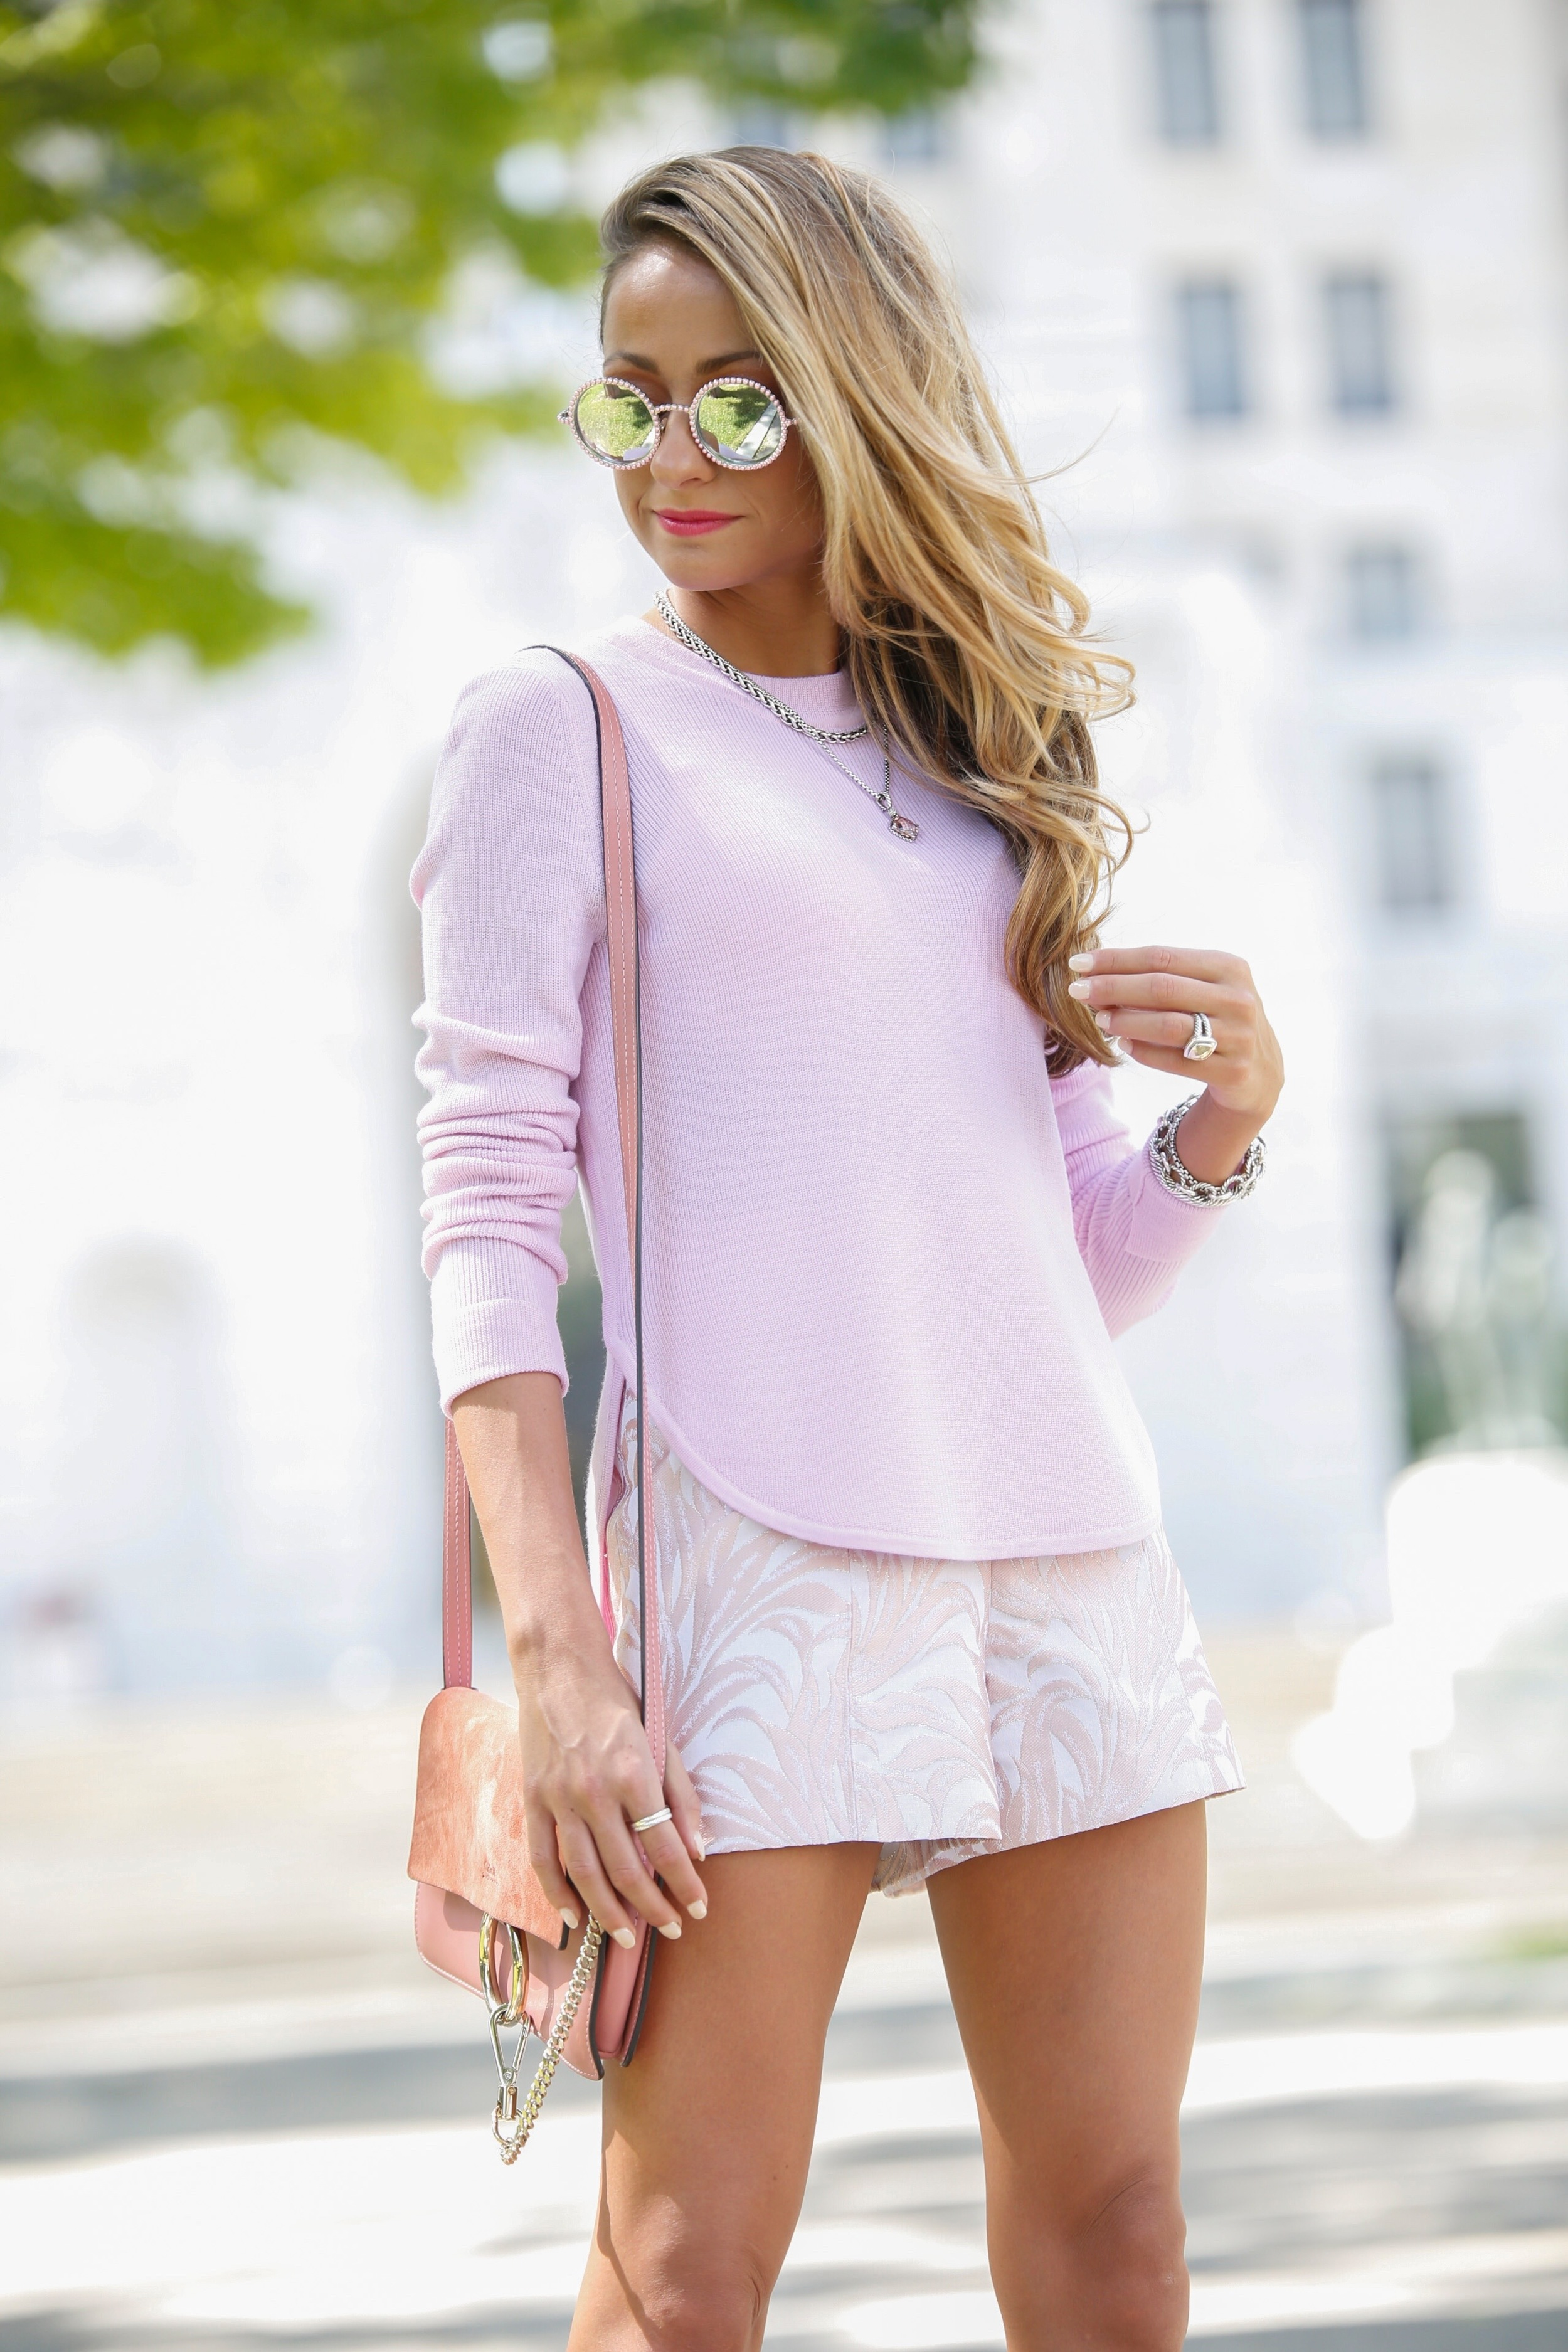 Pink chanel sunnies paired with an ALC knit and jacquard shorts